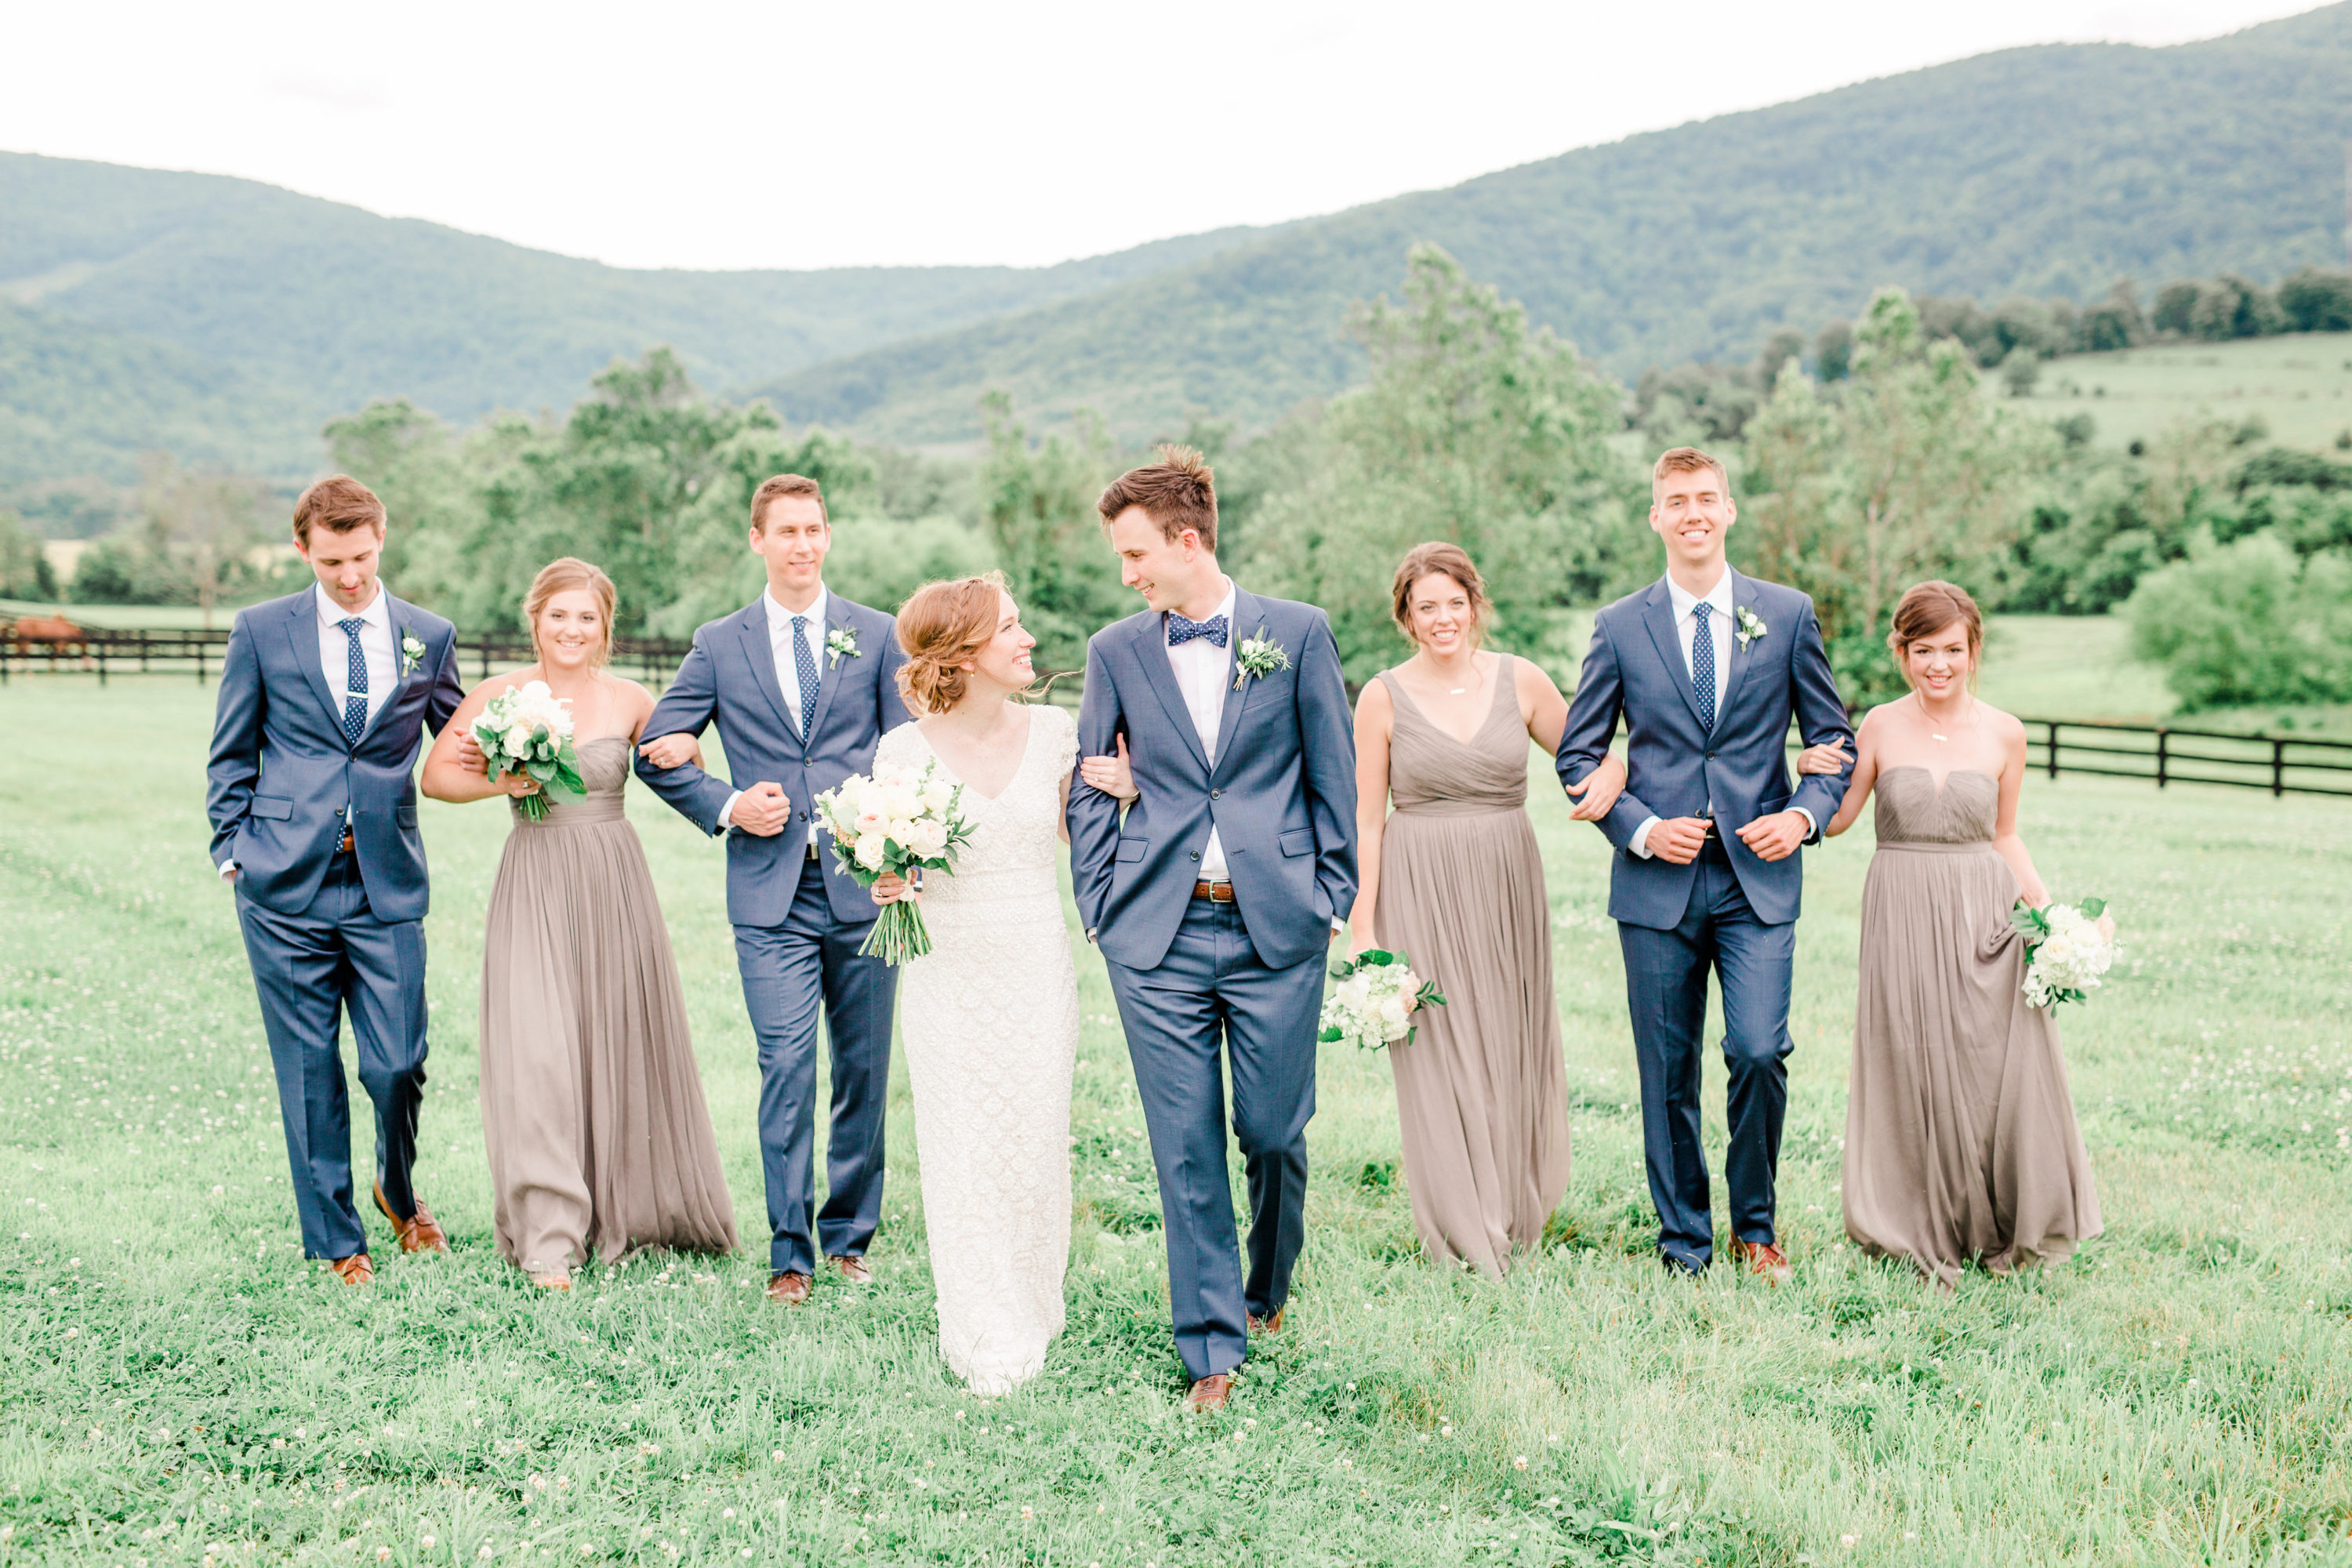 View More: http://hannahbjorndalphotography.pass.us/theakridges